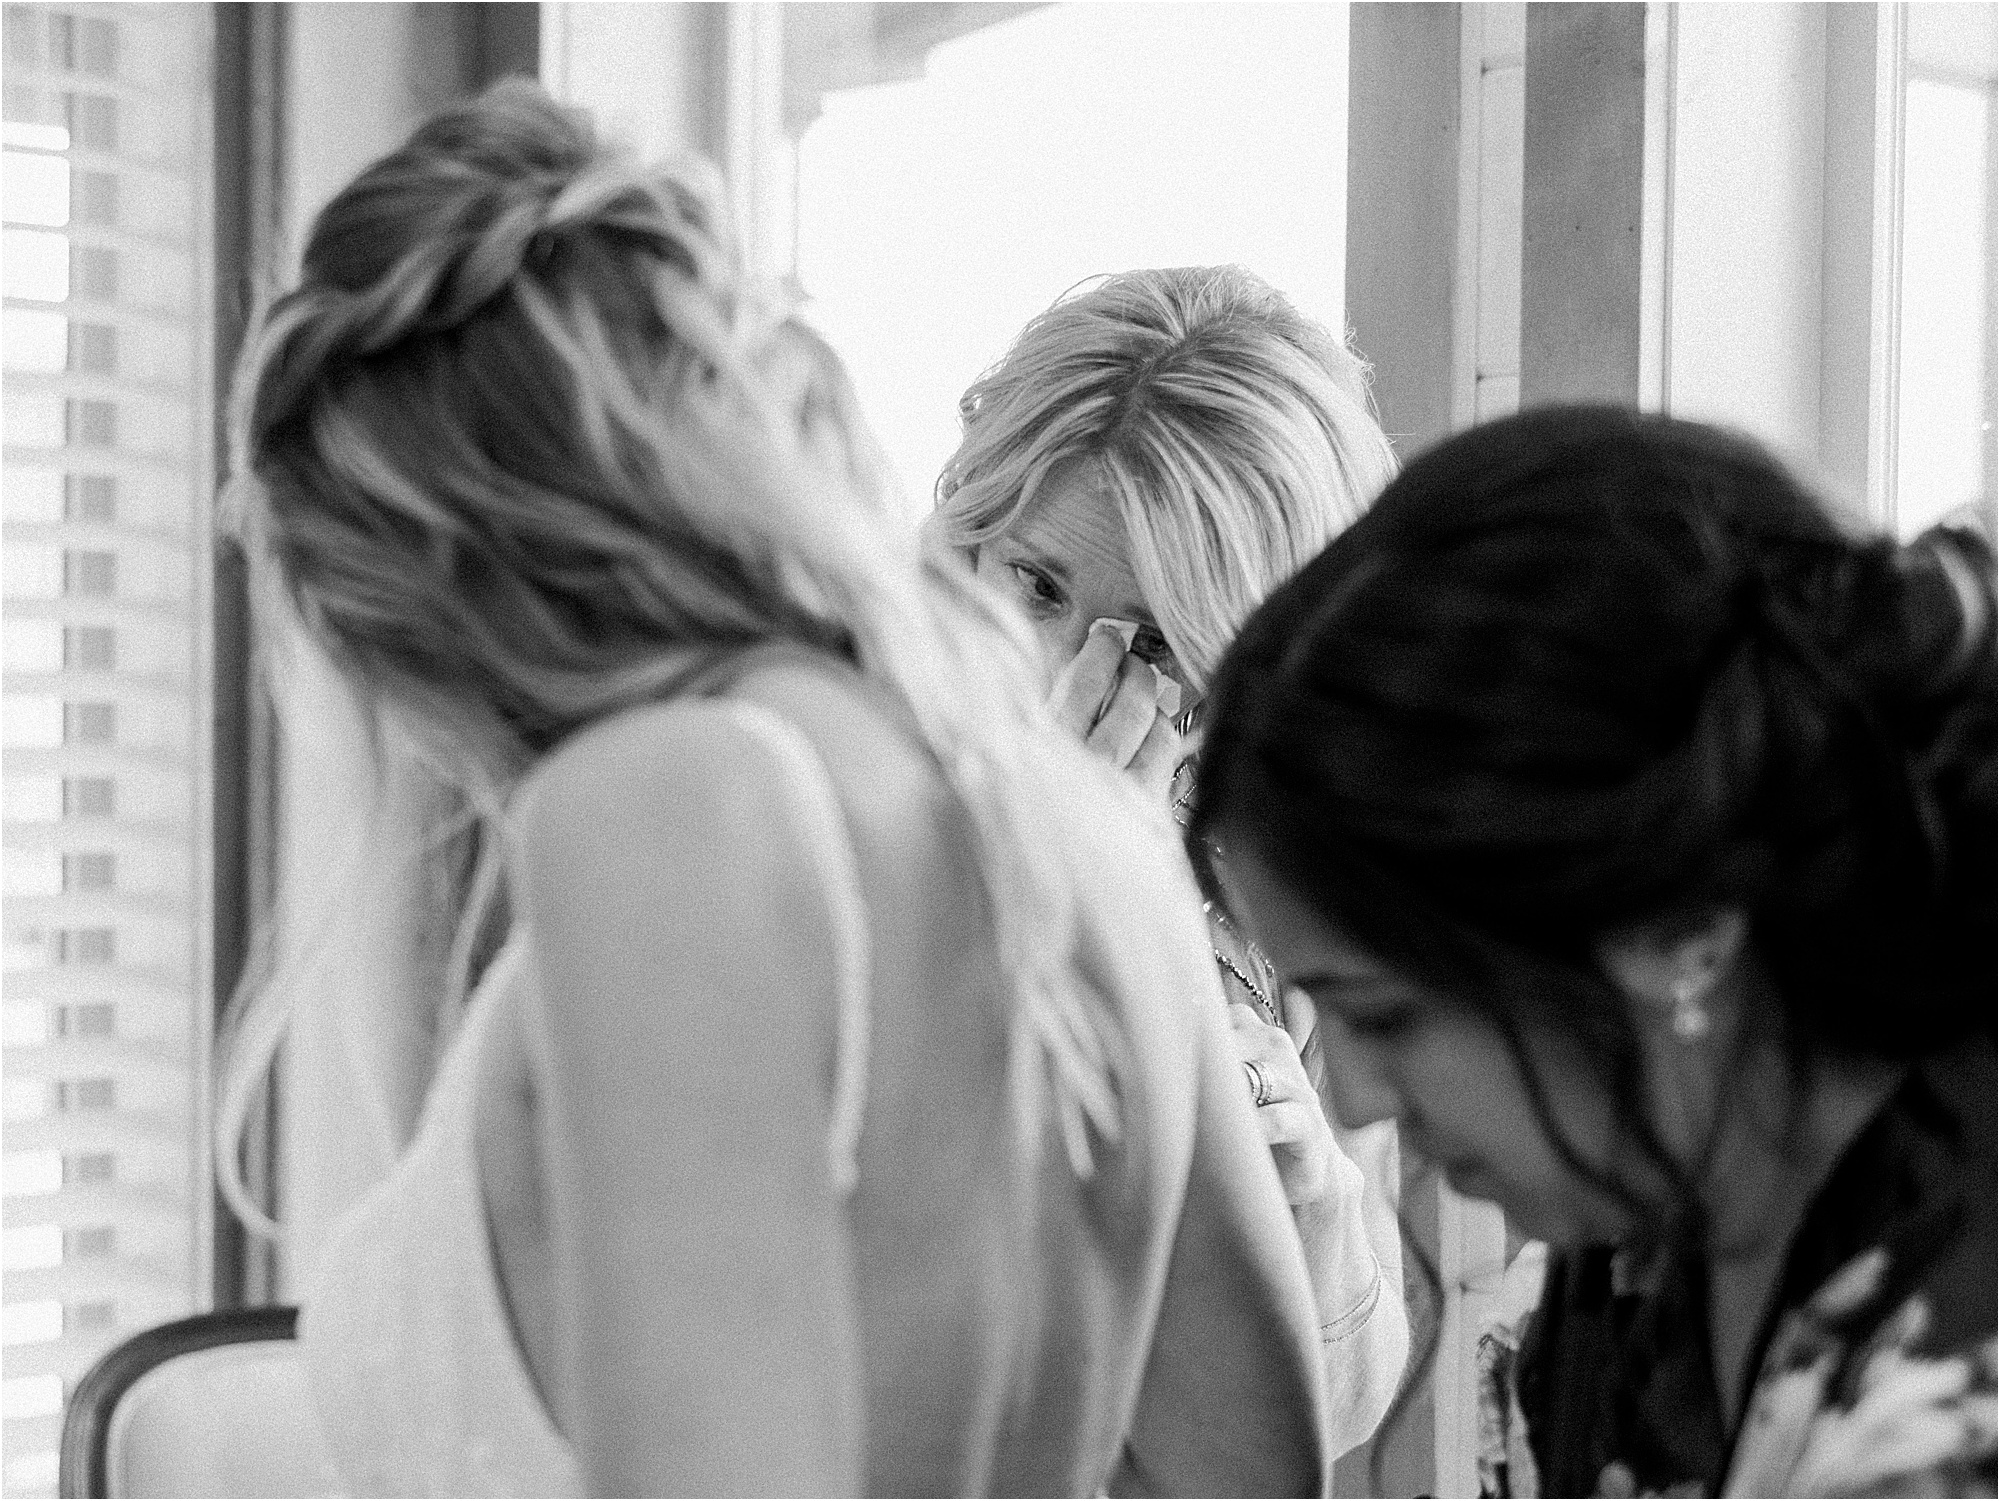 mother of the bride crying while bride gets into wedding dress